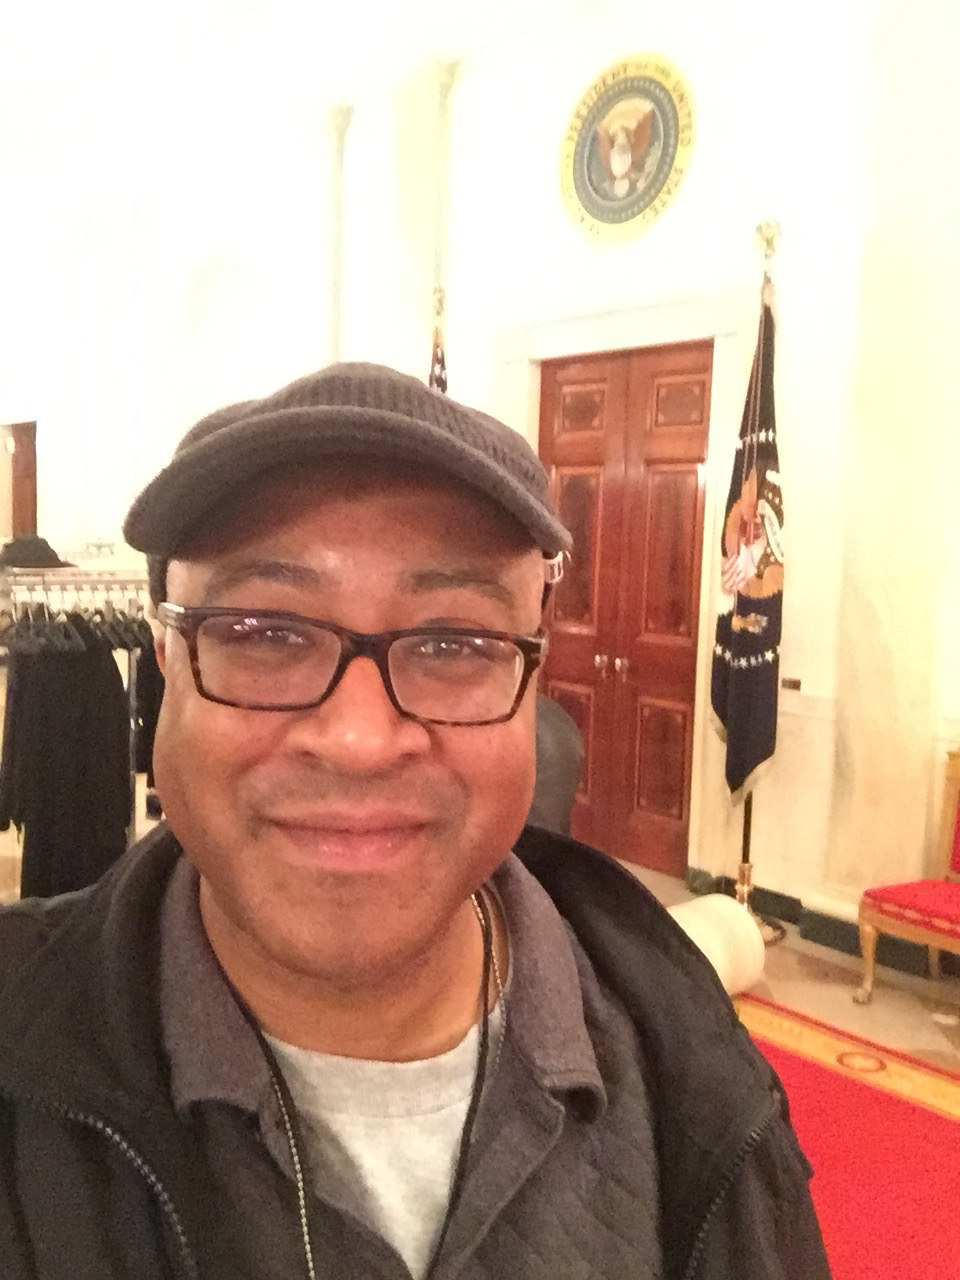 In The White House